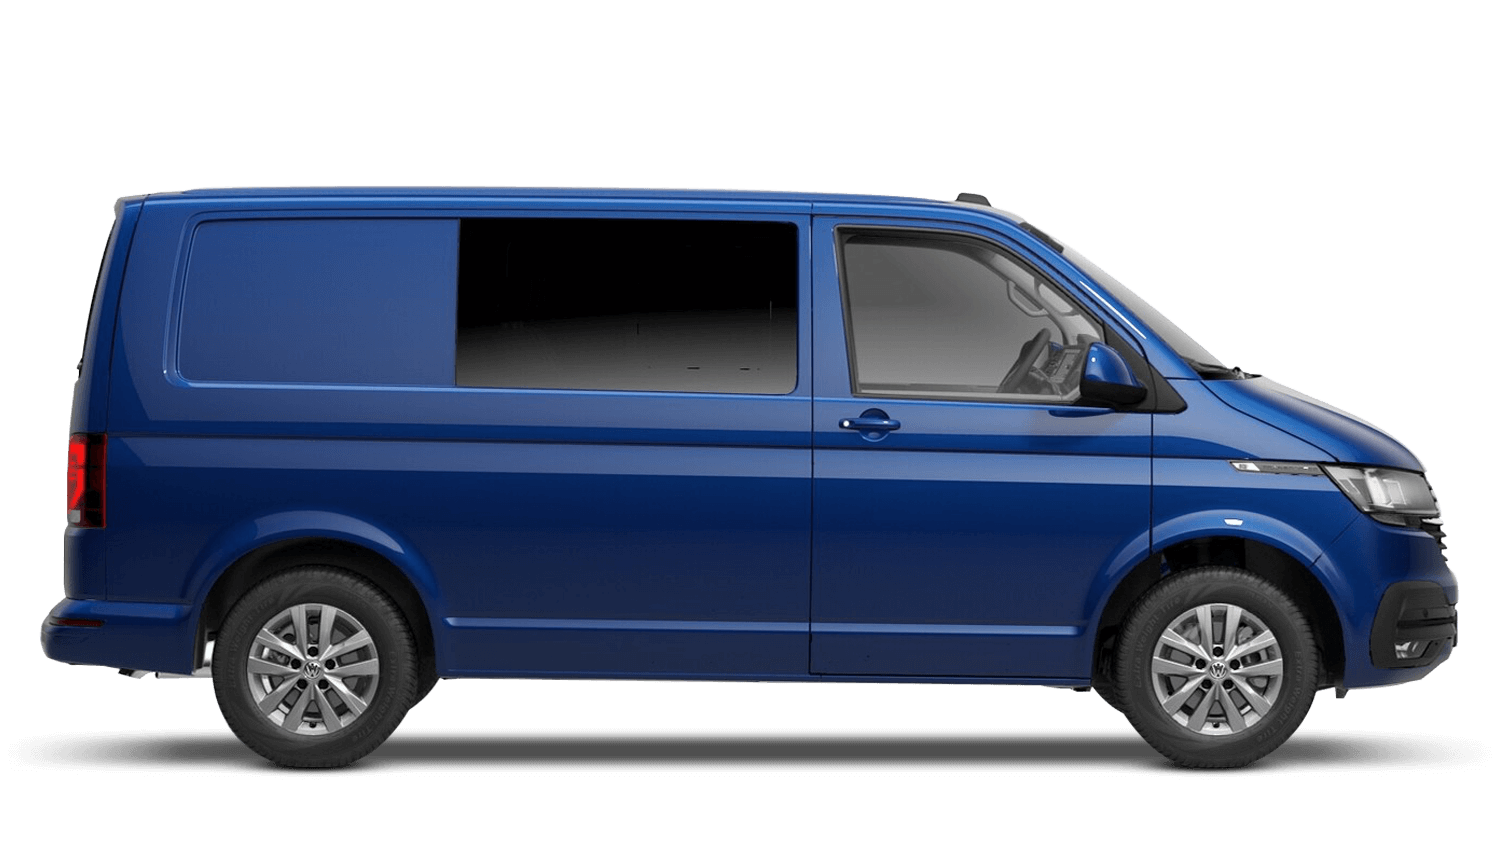 Exclusive Transporter kombi Contract Hire Offer